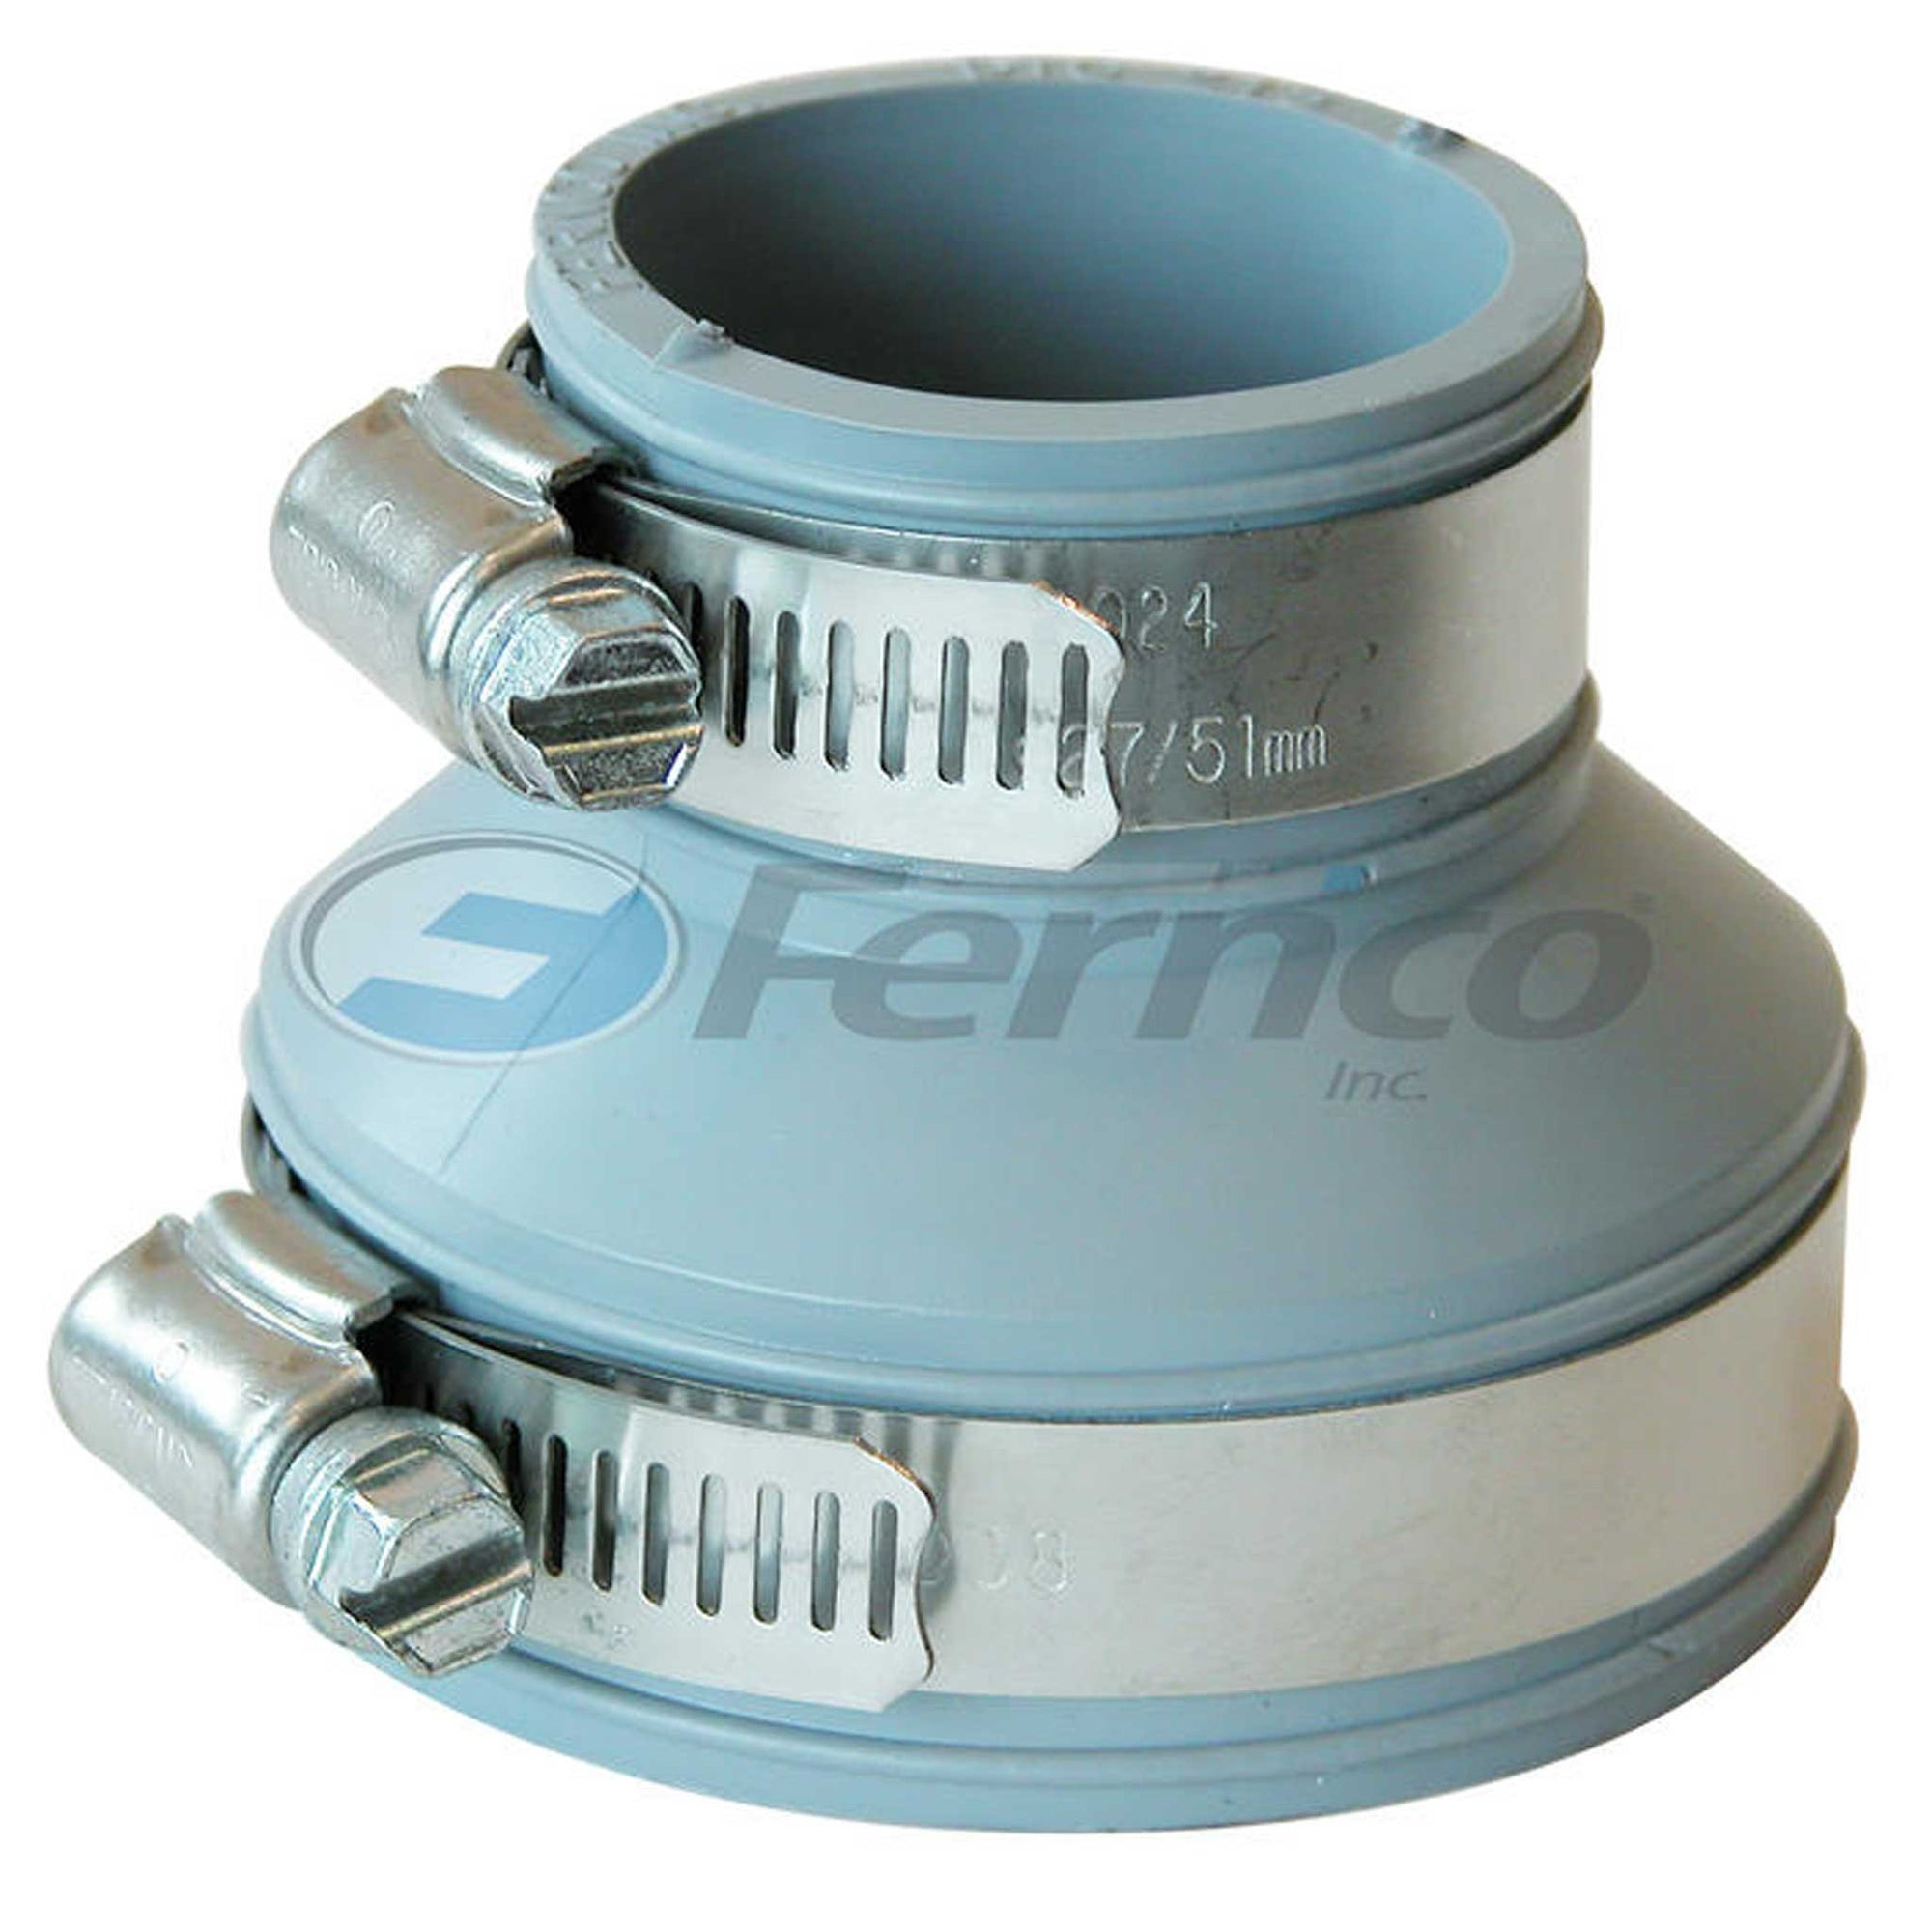 Fernco Tubular Trap connector